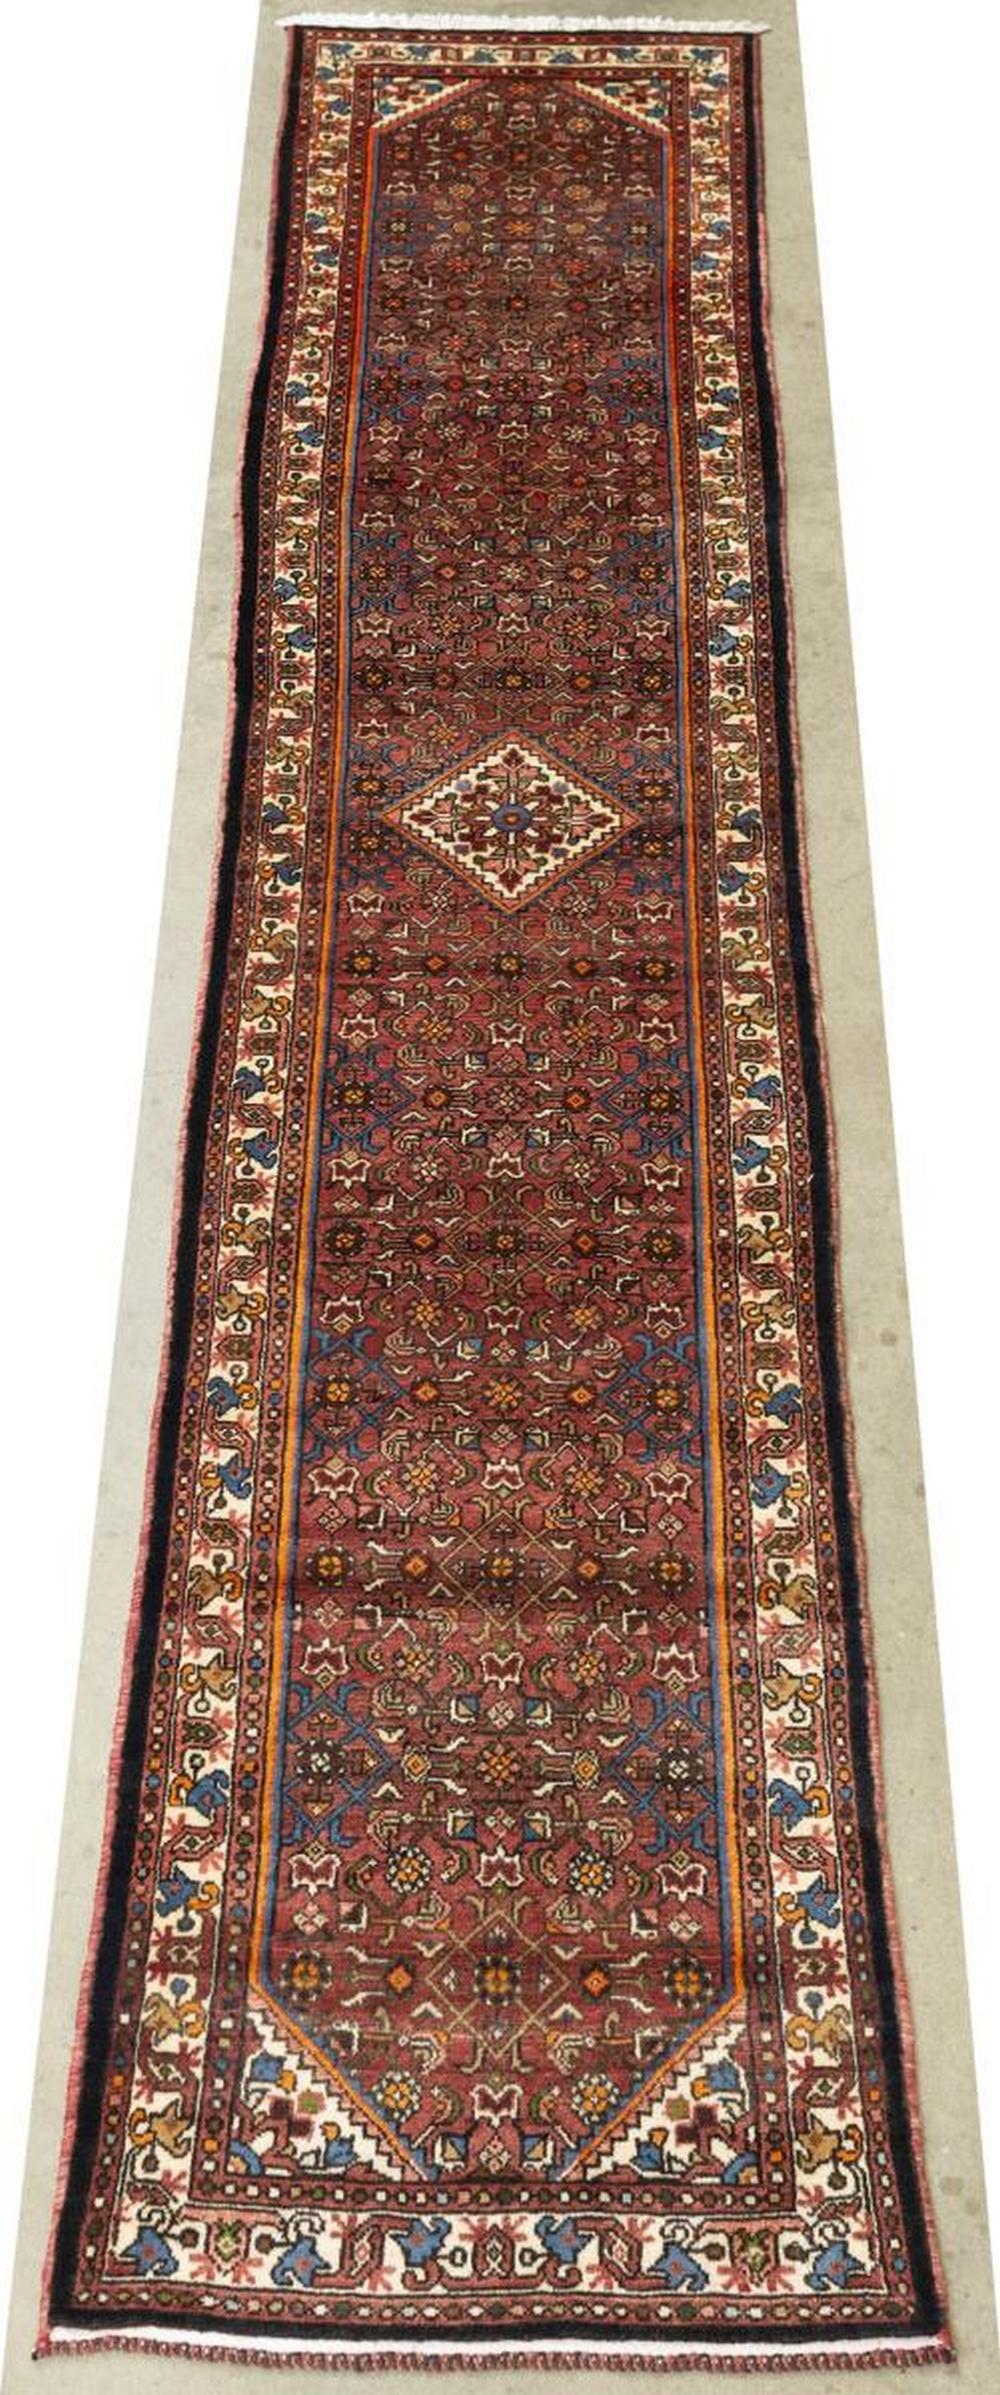 "HAND-TIED PERSIAN RUNNER RUG, 12'6"" X 2'8"""